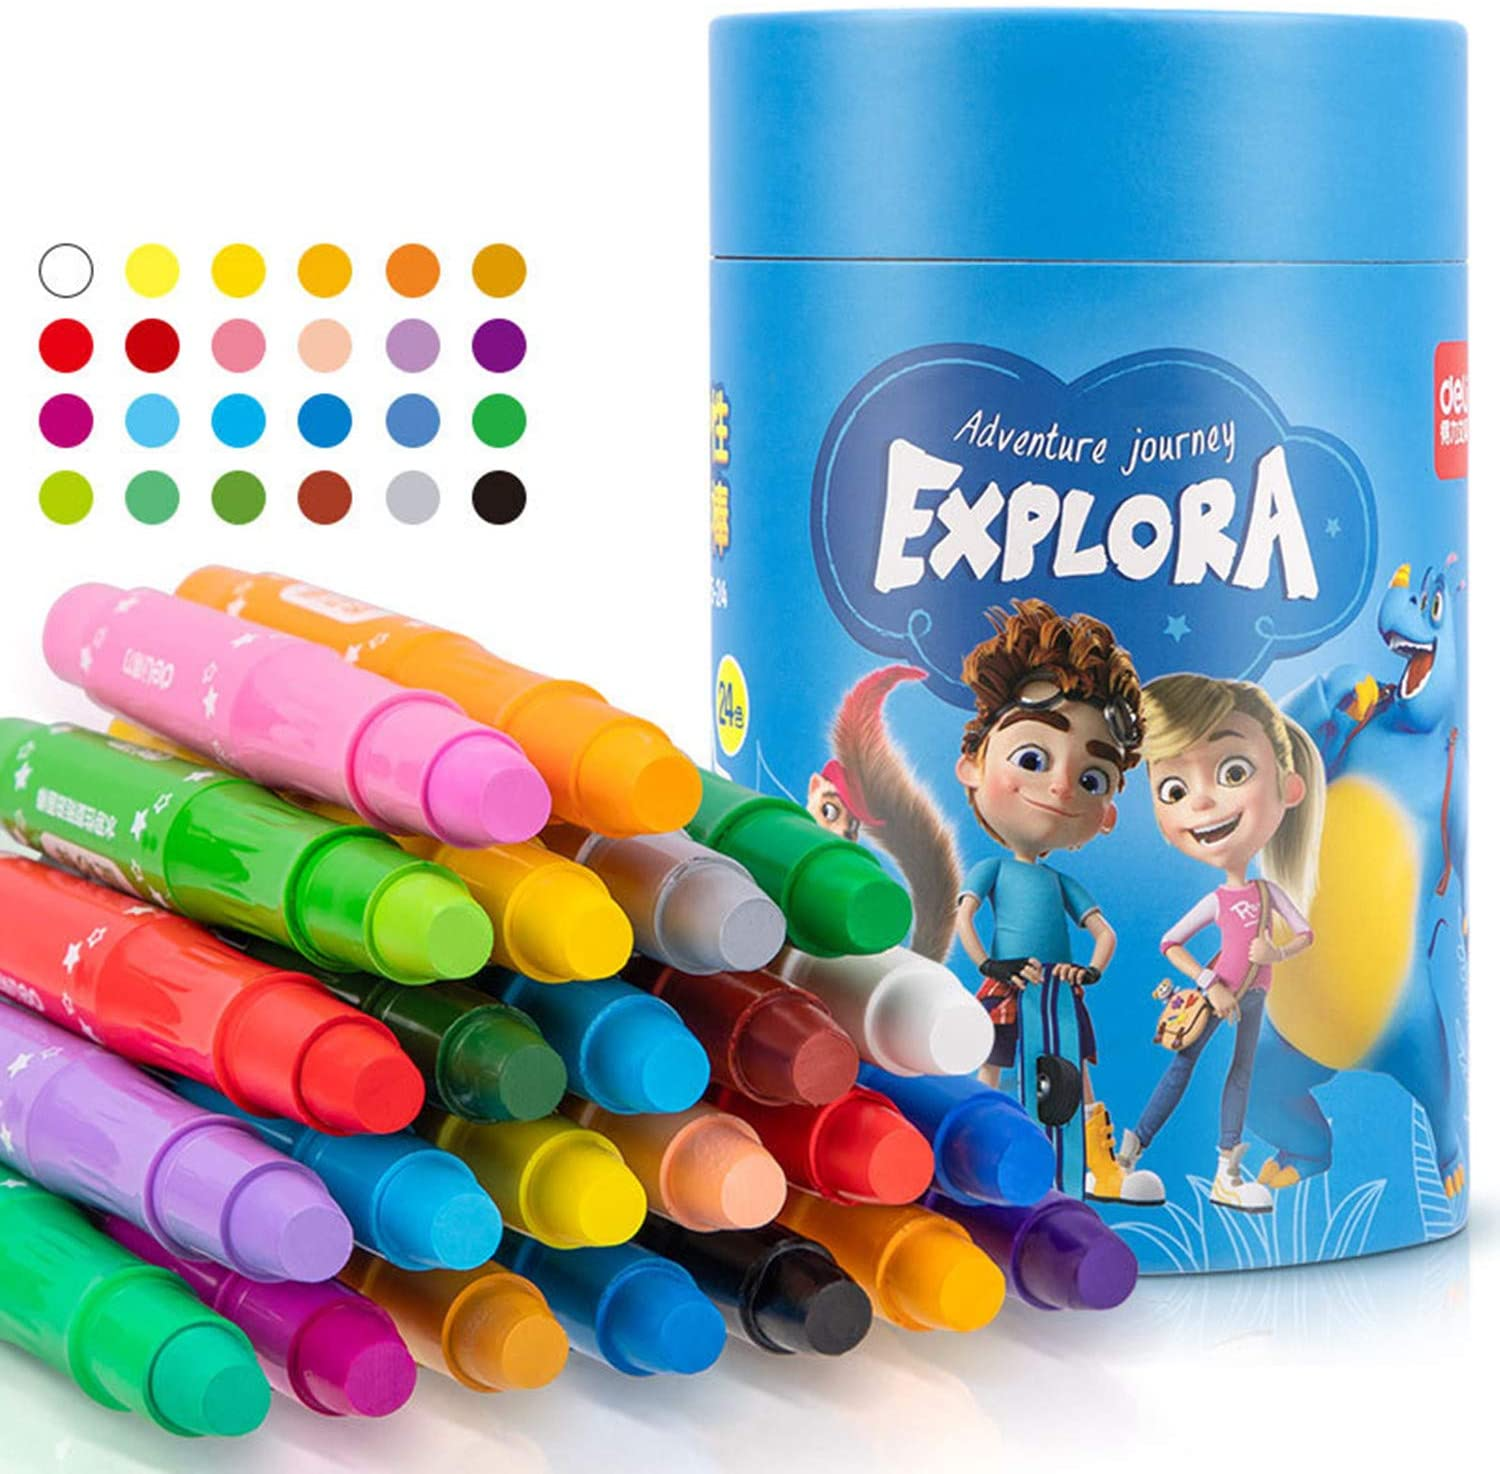 ZTT Twistable Crayons,Jumbo Crayons,Washable Crayons ,Crayons 24 Count,Crayons for Kids Ages 4-8, 3 in 1 Effect (Crayon- Pastel- Watercolor)+A Free Brush,for Toddler Art Supplies 2 Years.